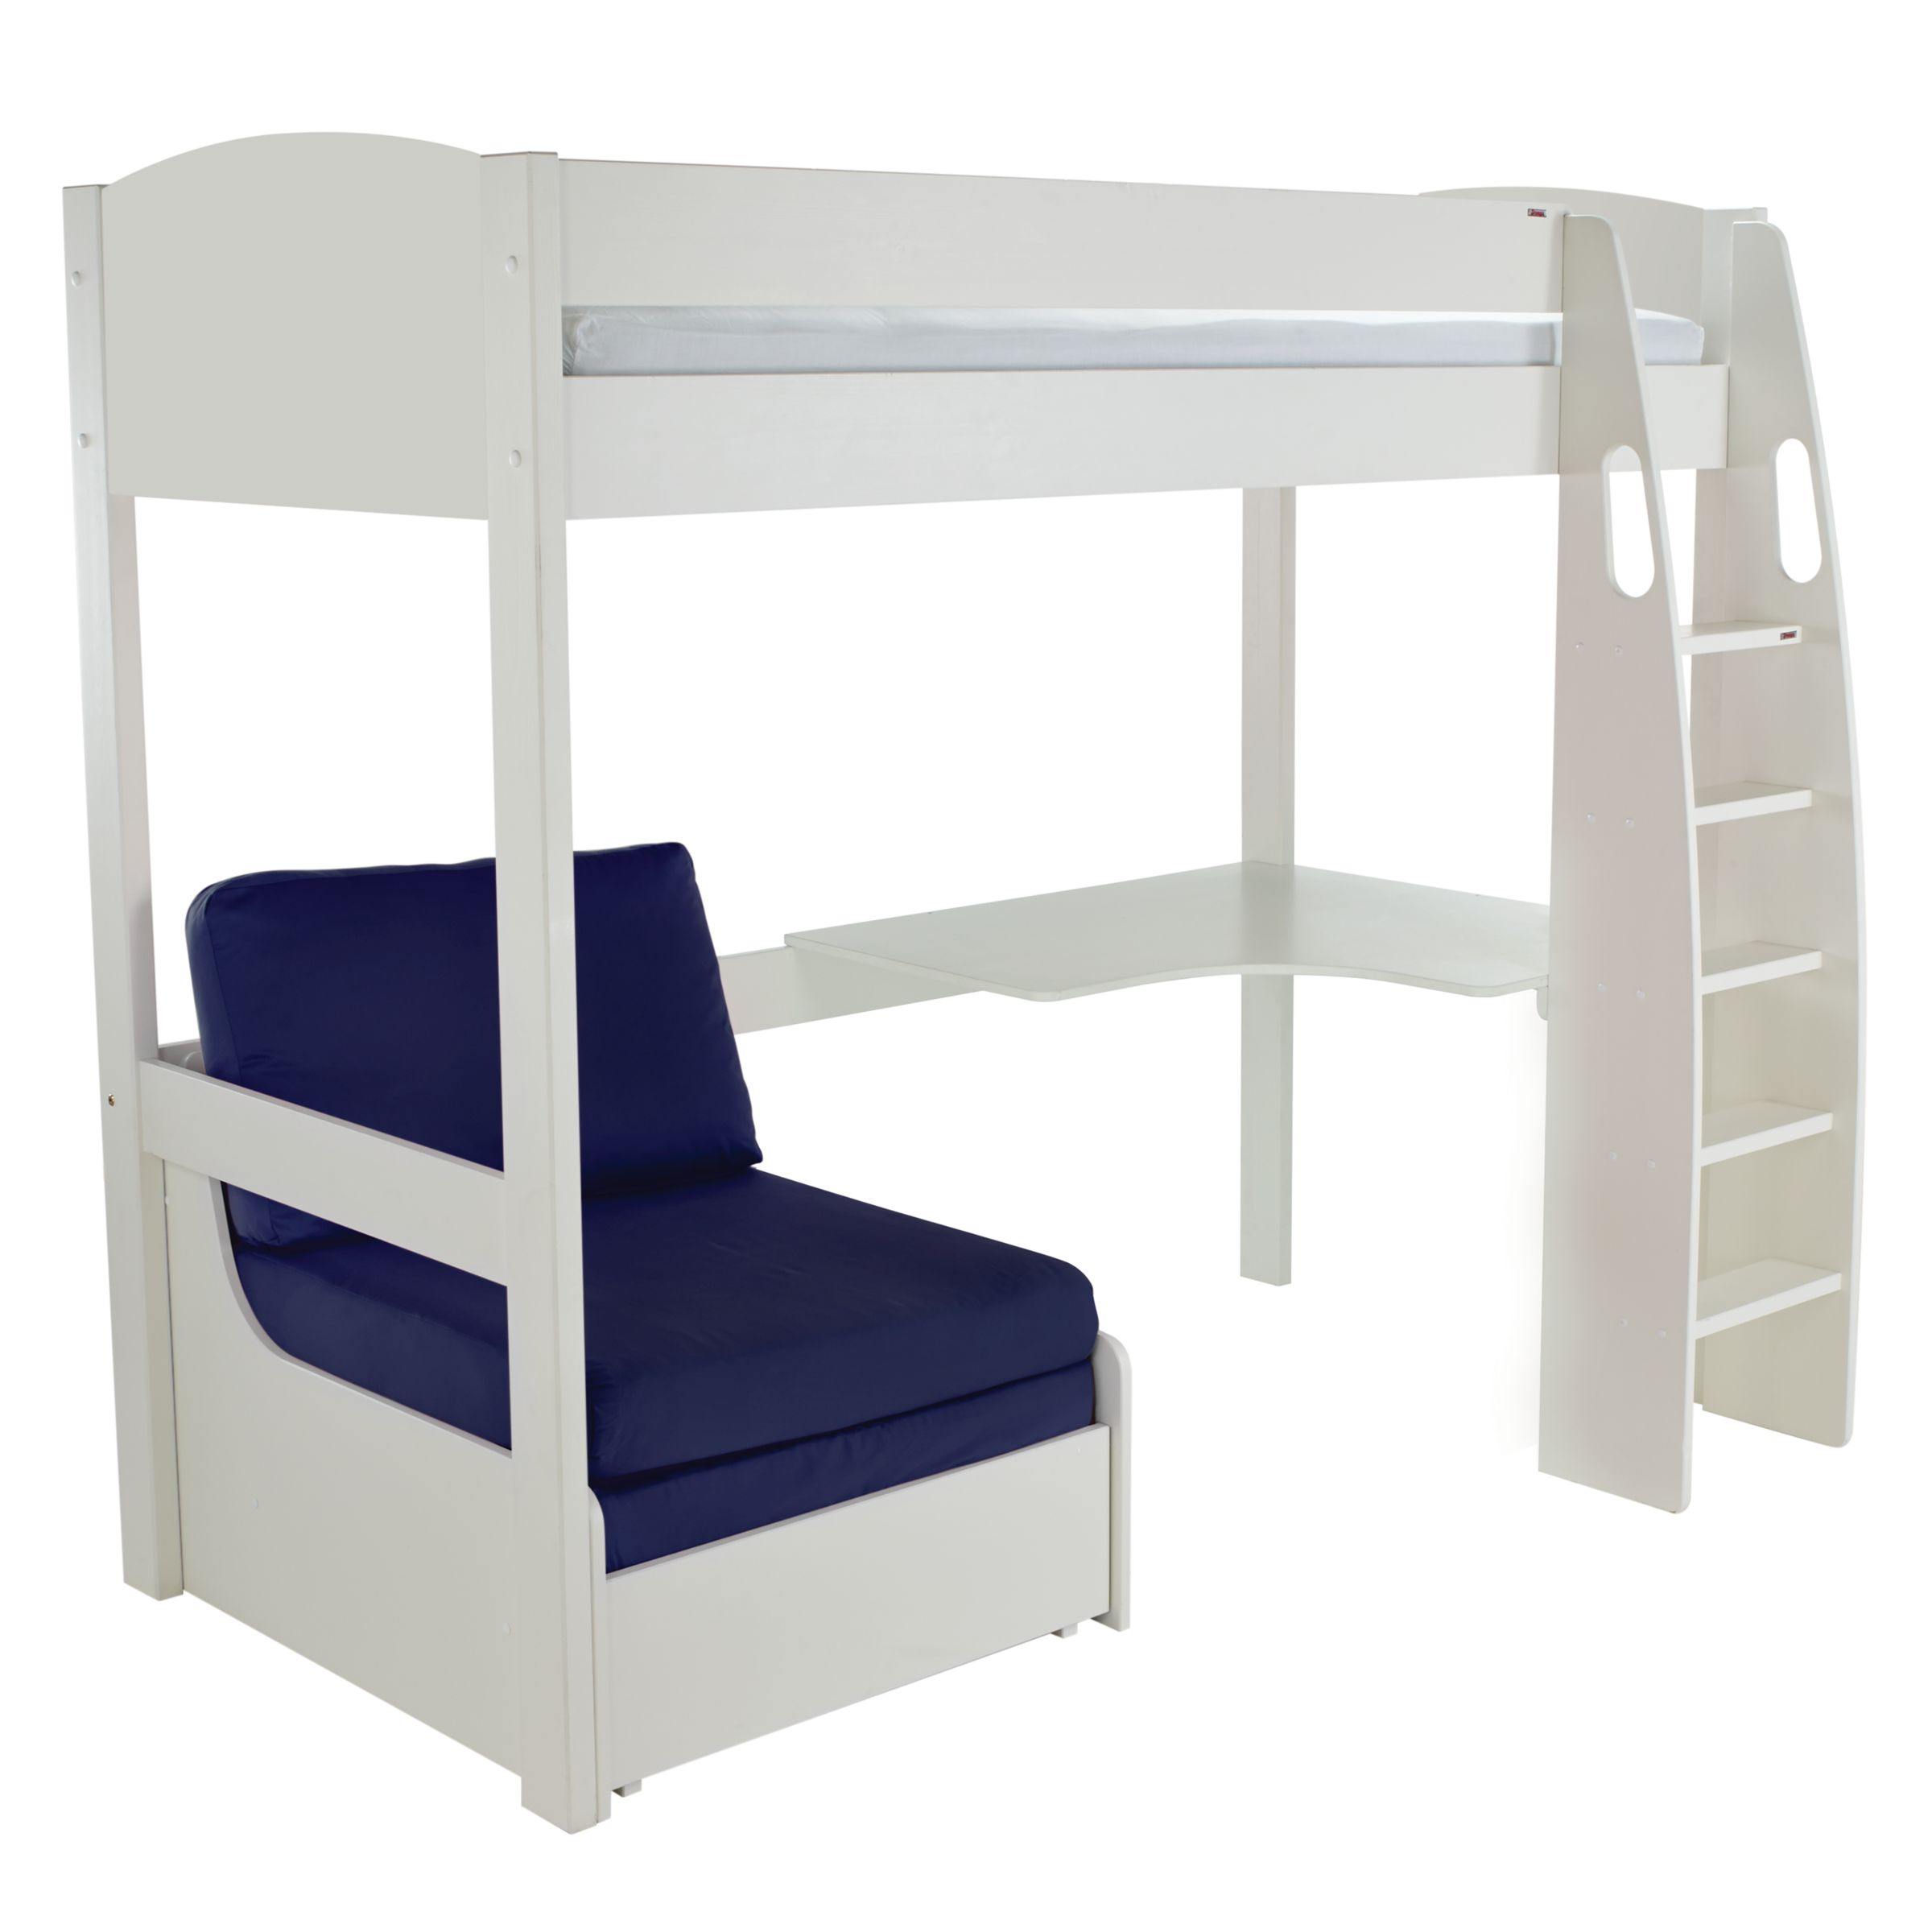 Stompa Uno S Plus High Sleeper Bed With Corner Desk And